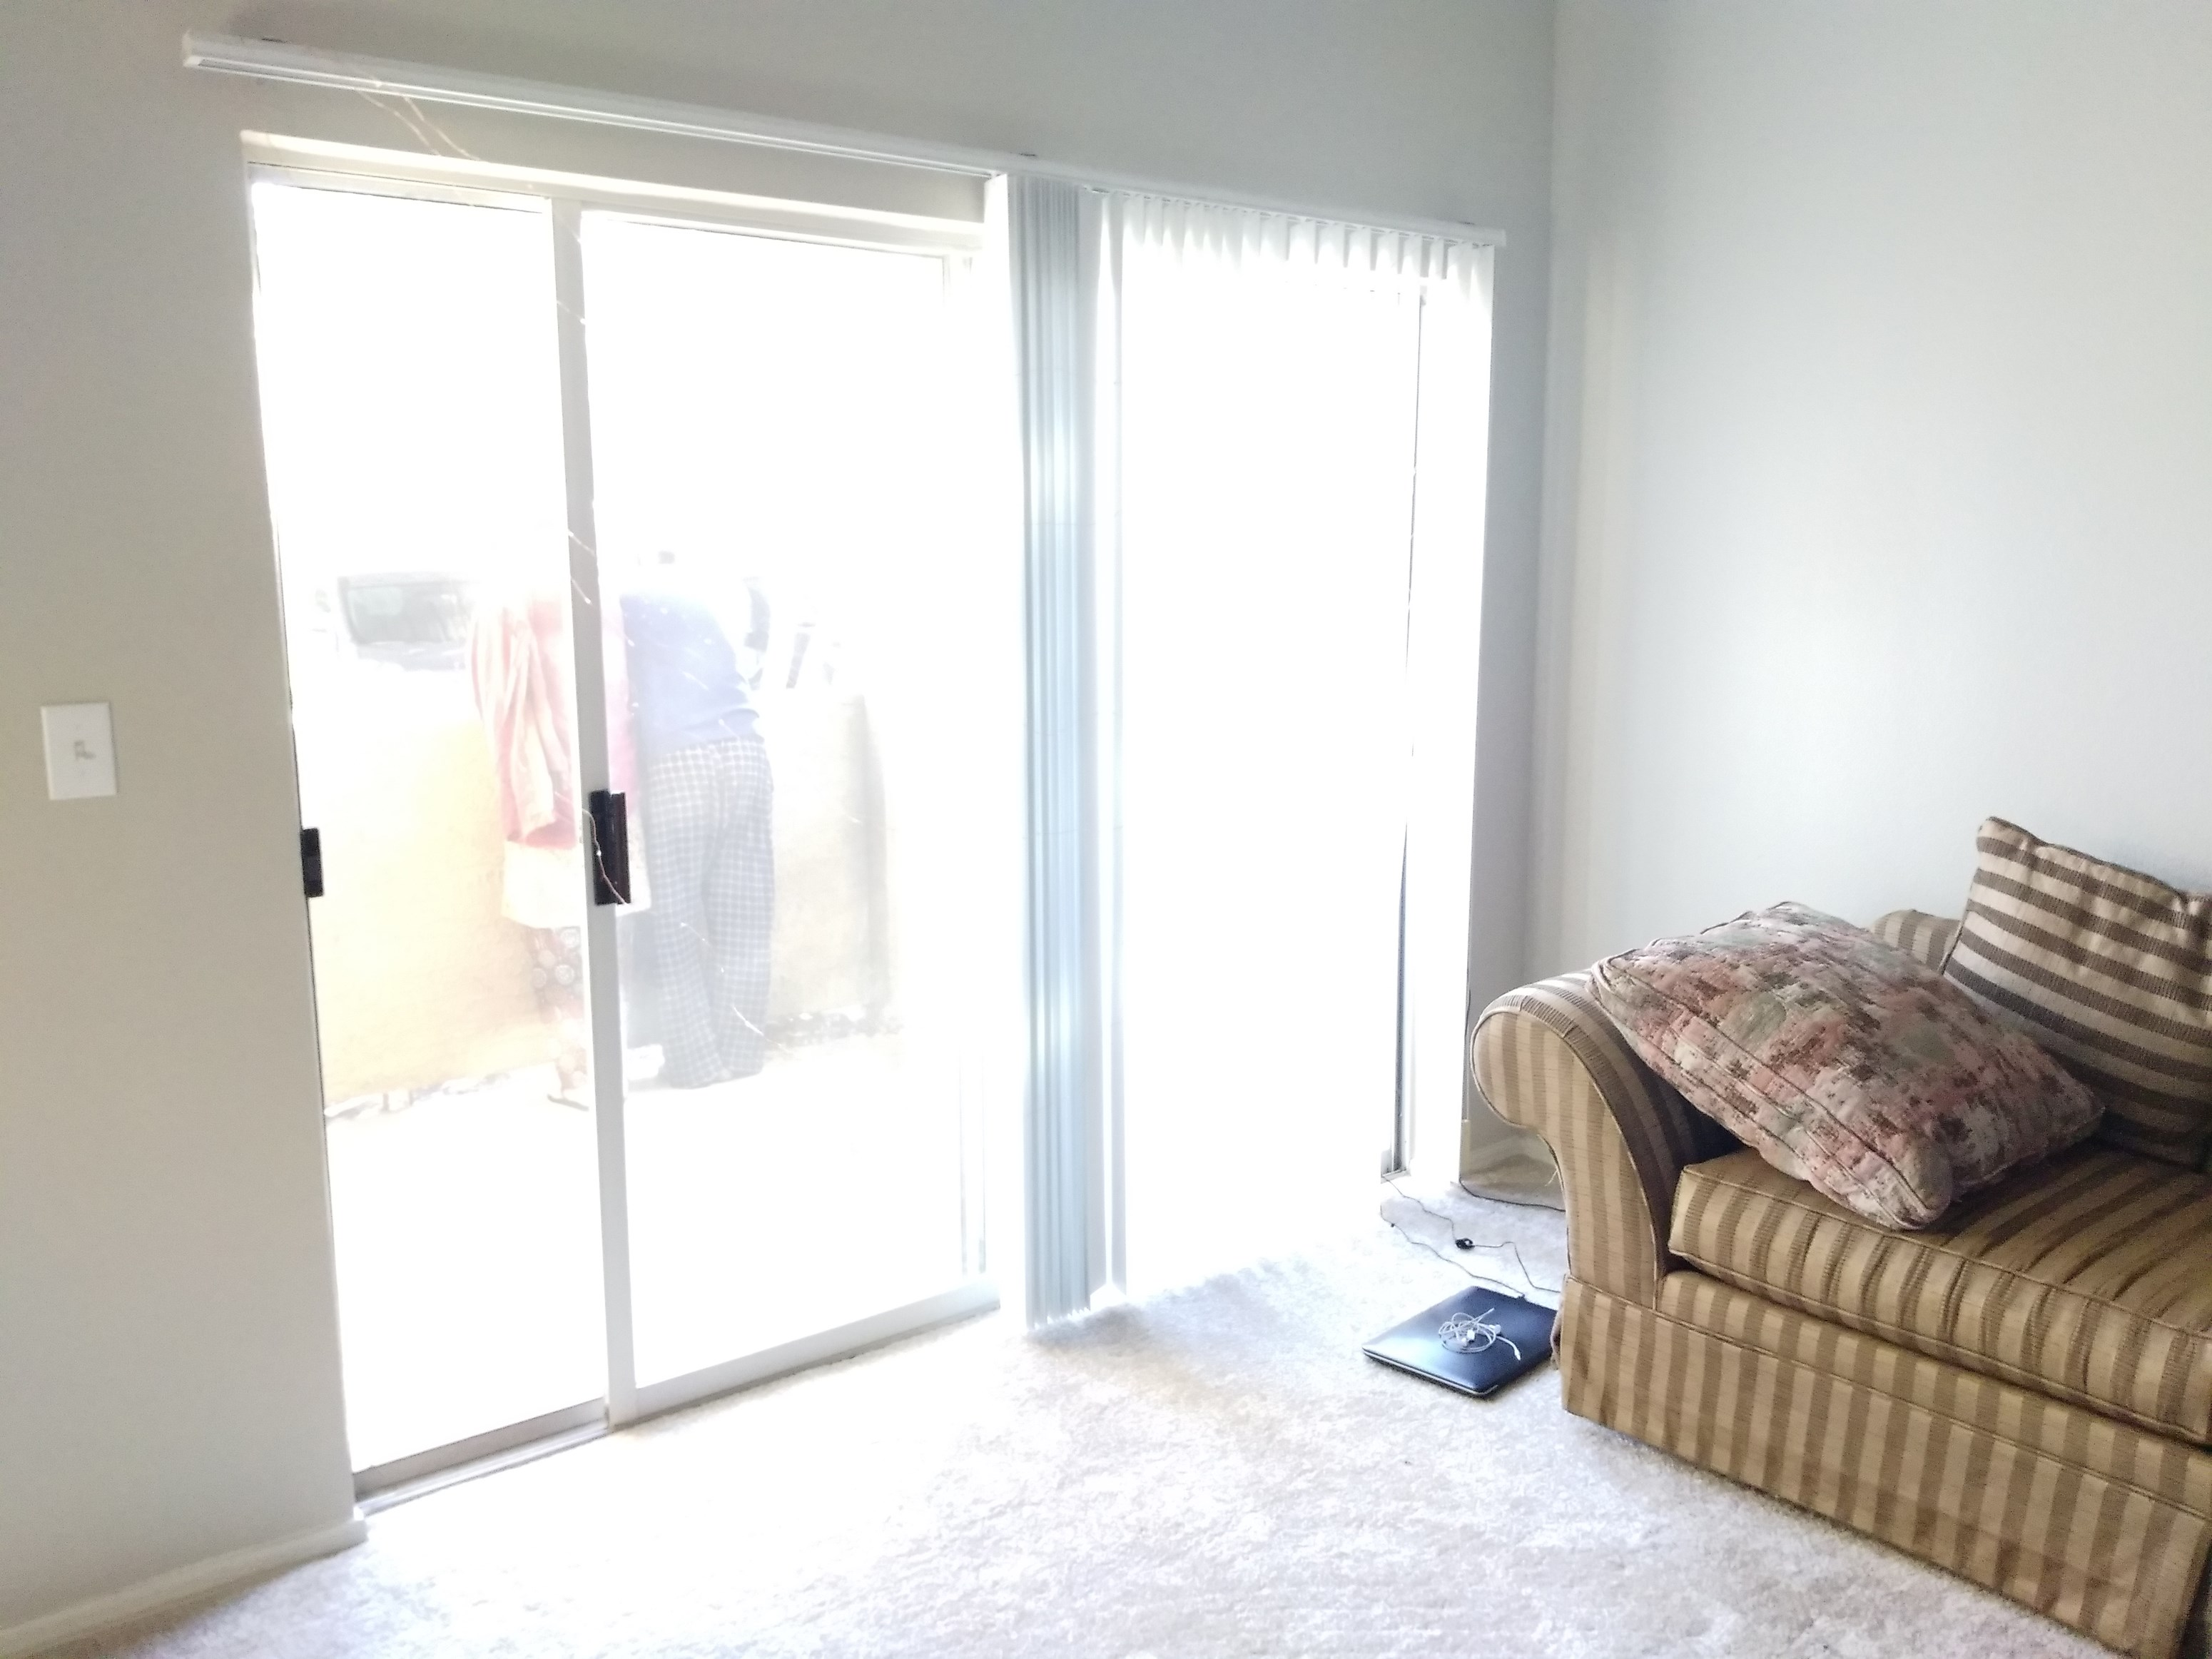 Rooms for Rent in Dallas Fortworth – Apartments, Flats, Commercial ...